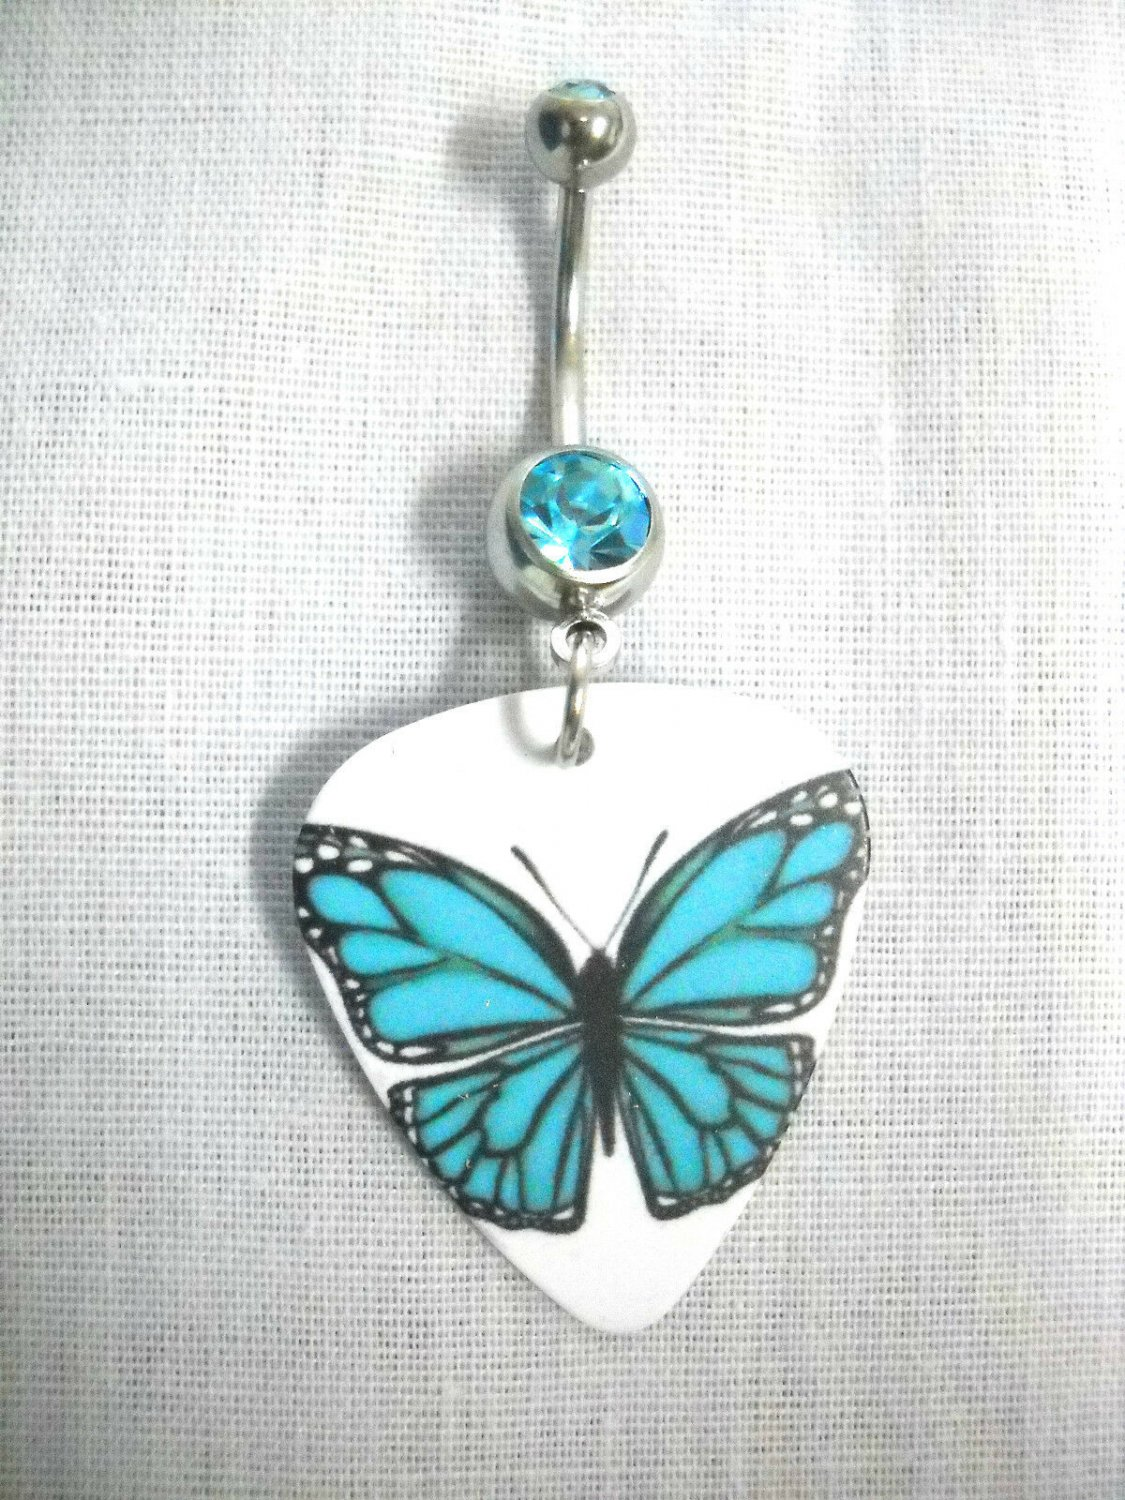 BLUE OPEN WINGS BUTTERFLY PRINT GUITAR PICK - 14g BLUE CZ BELLY RING BARBELL